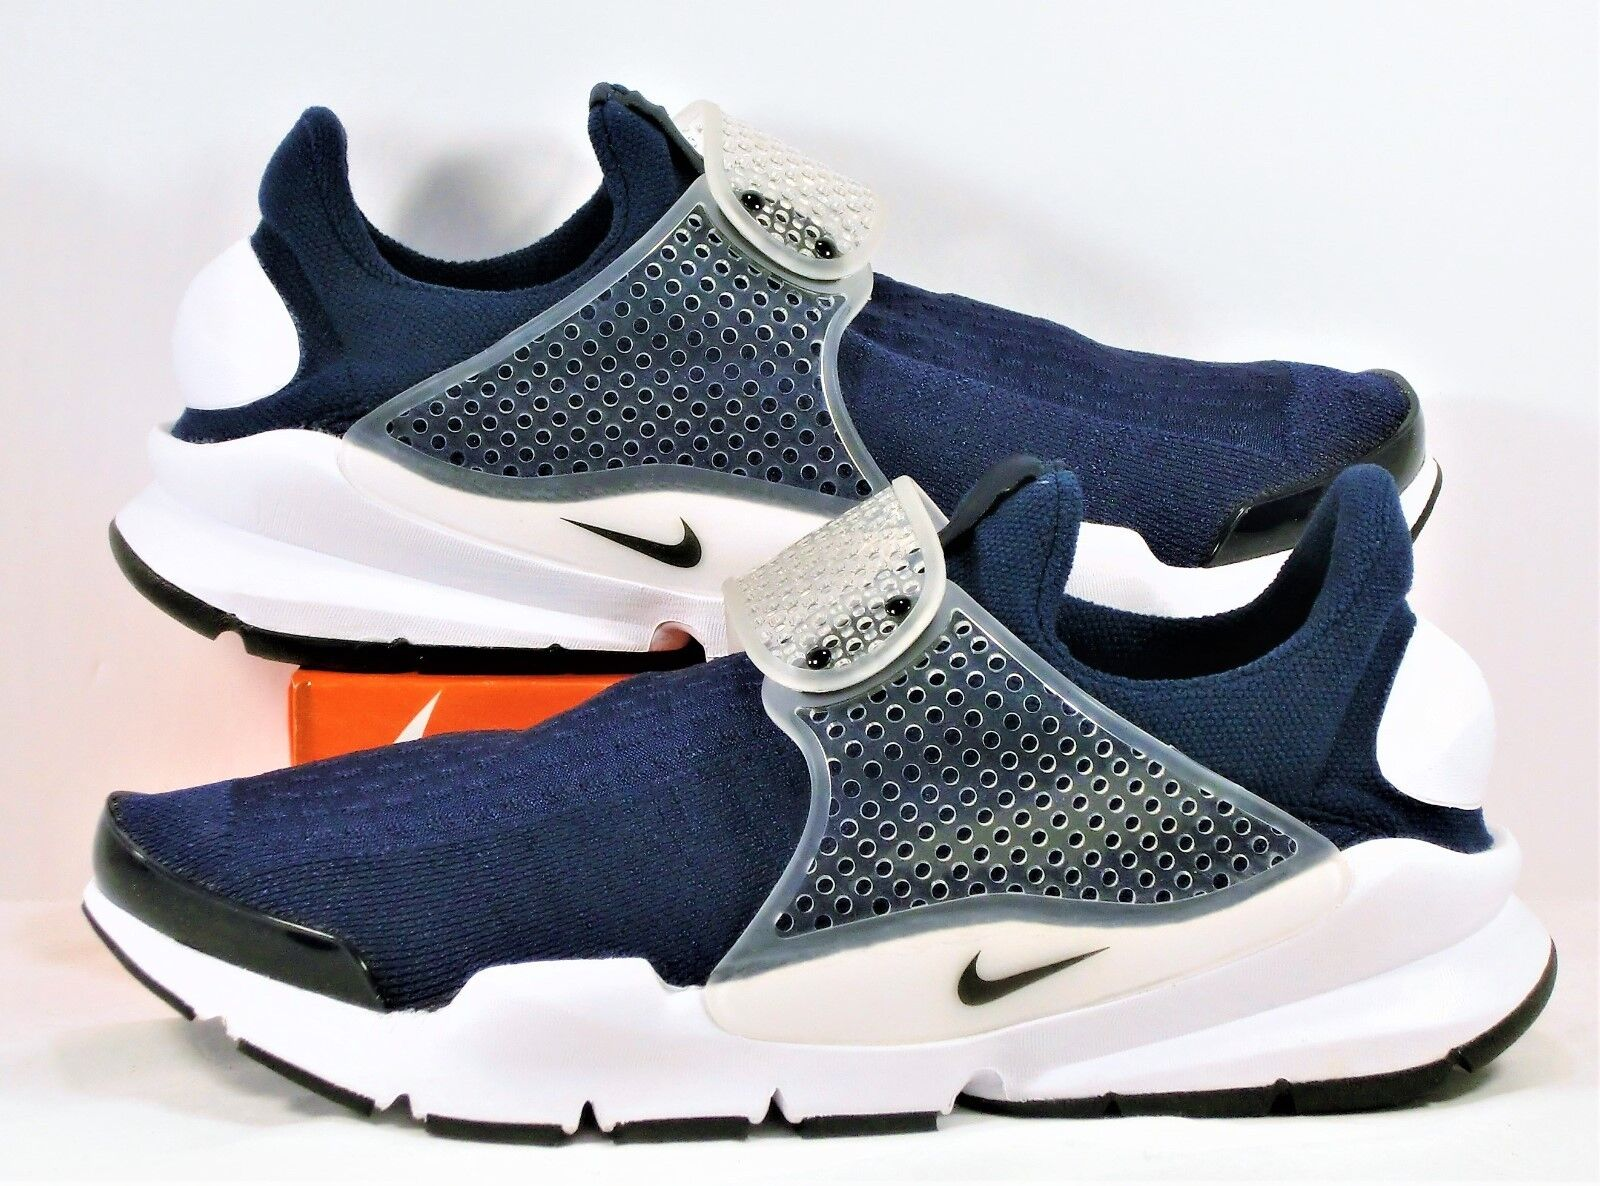 Nike Sock Dart KJCRD Midnight Navy Running & Training Shoes Sz 10 NEW 819686 400